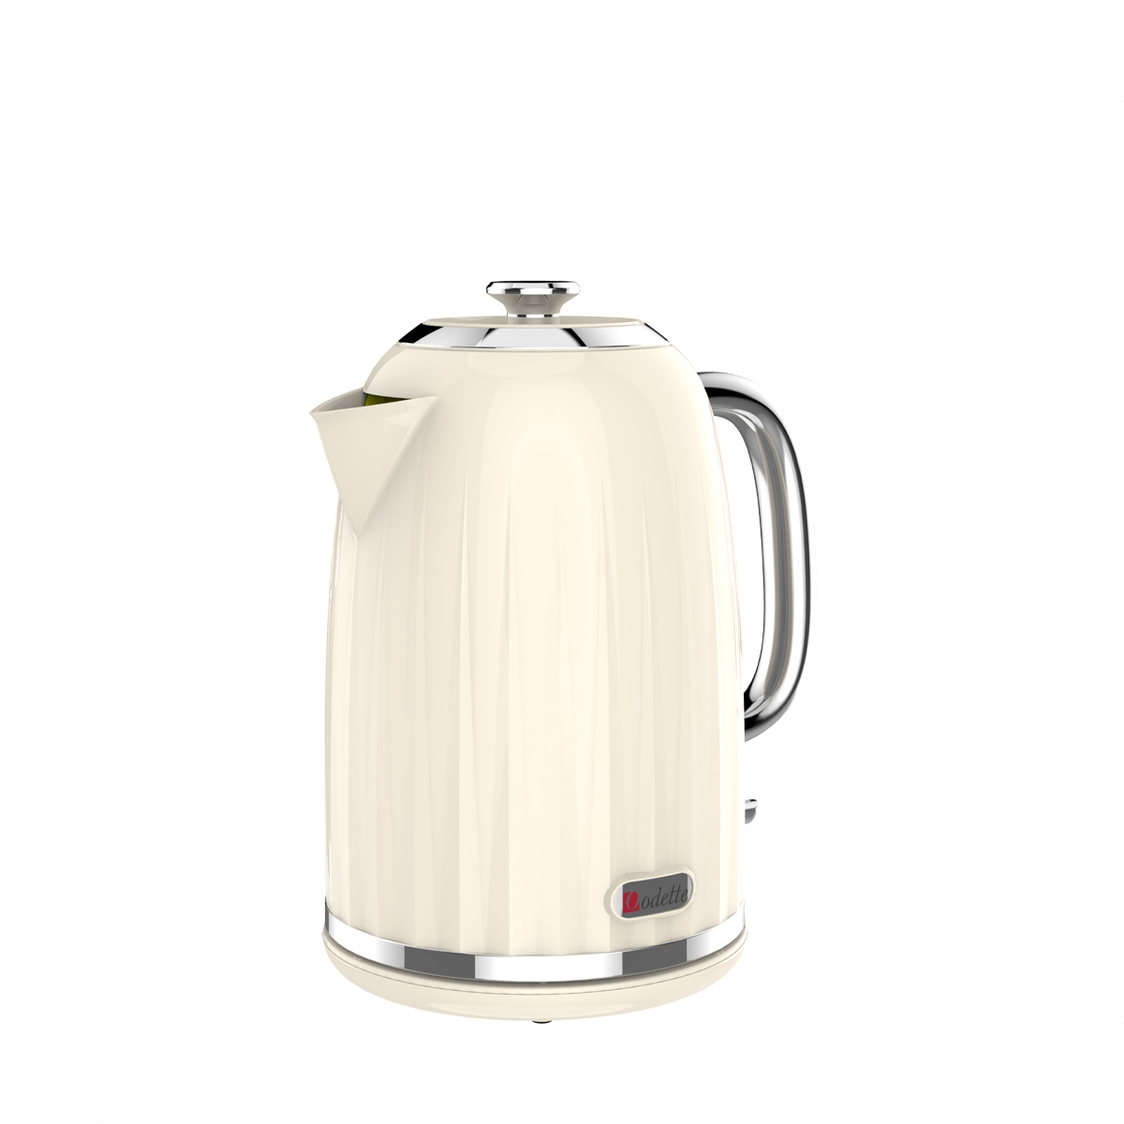 17L Retro Design Electric Kettle Beige WK8512